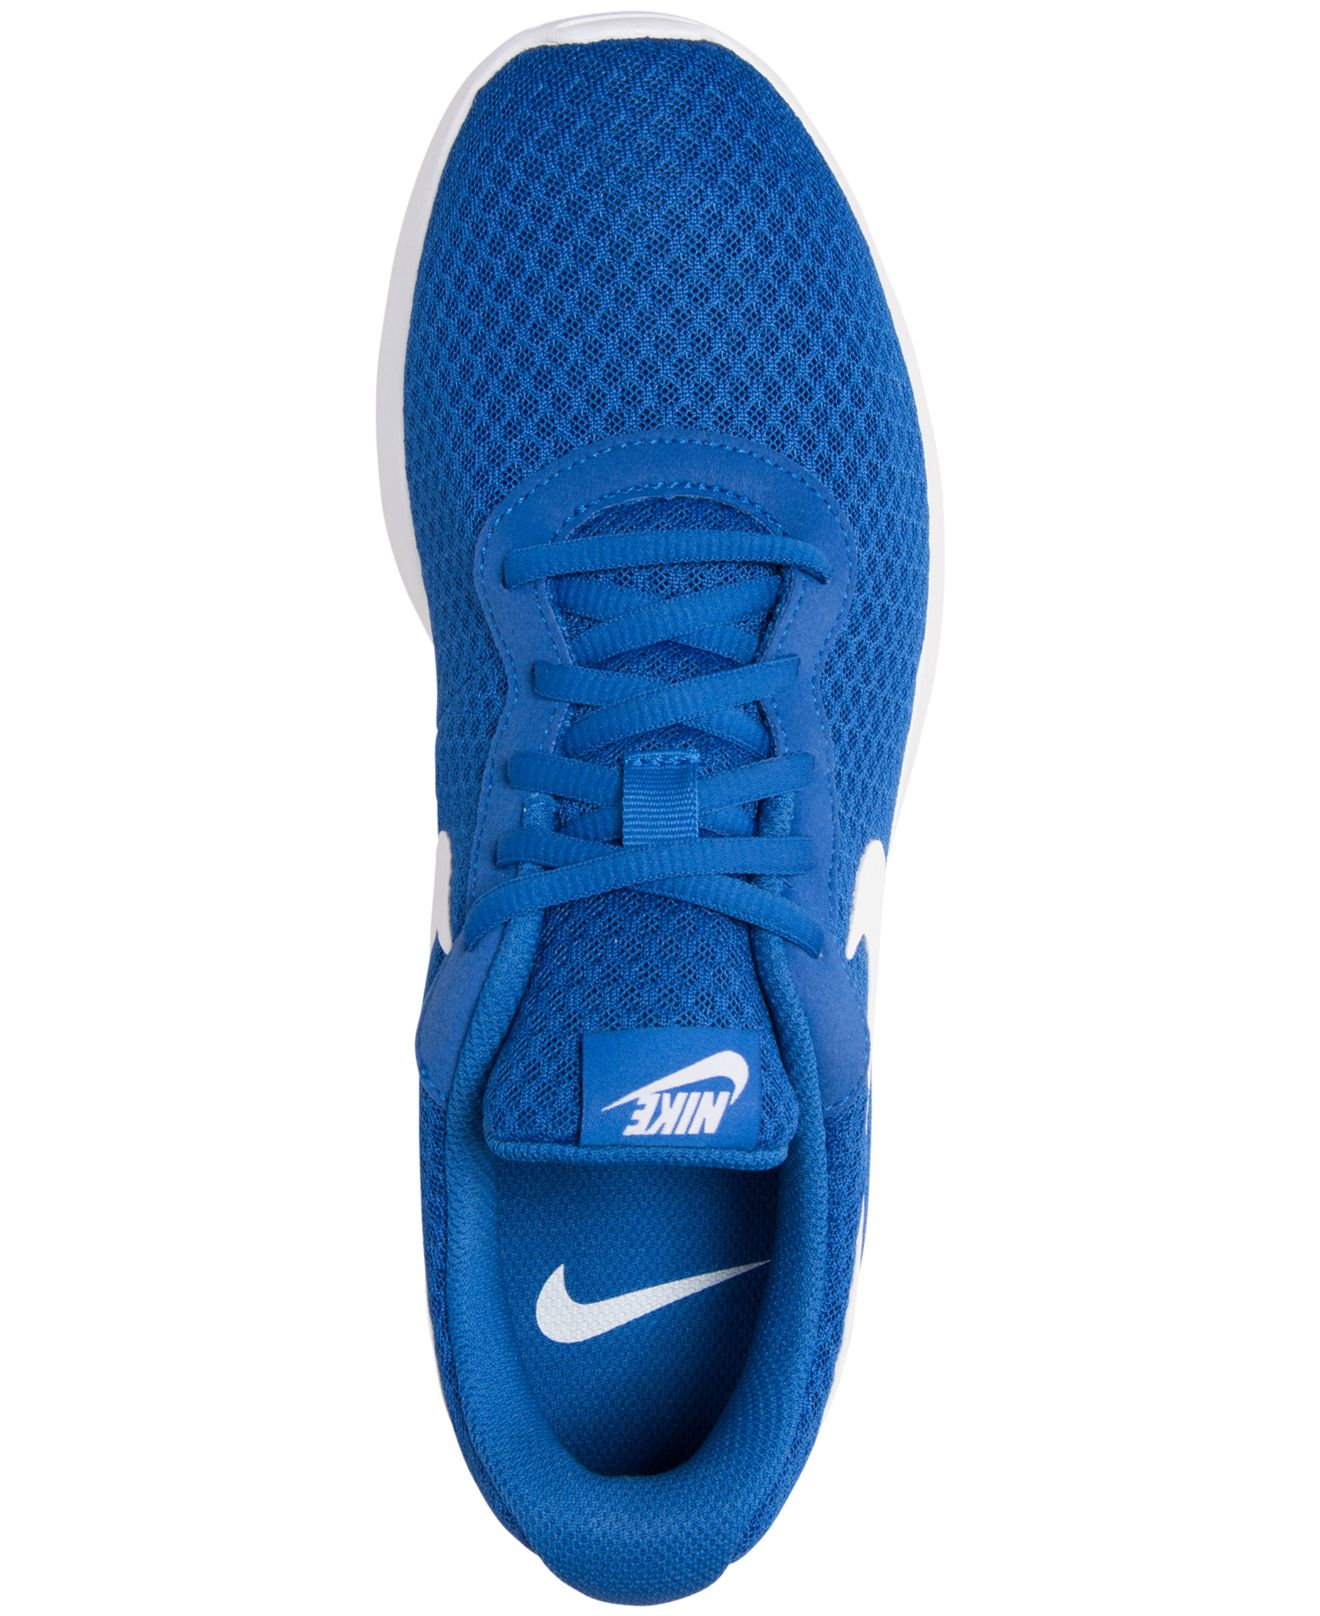 04ed98c6b34 Lyst - Nike Men s Tanjun Casual Sneakers From Finish Line in Blue ...